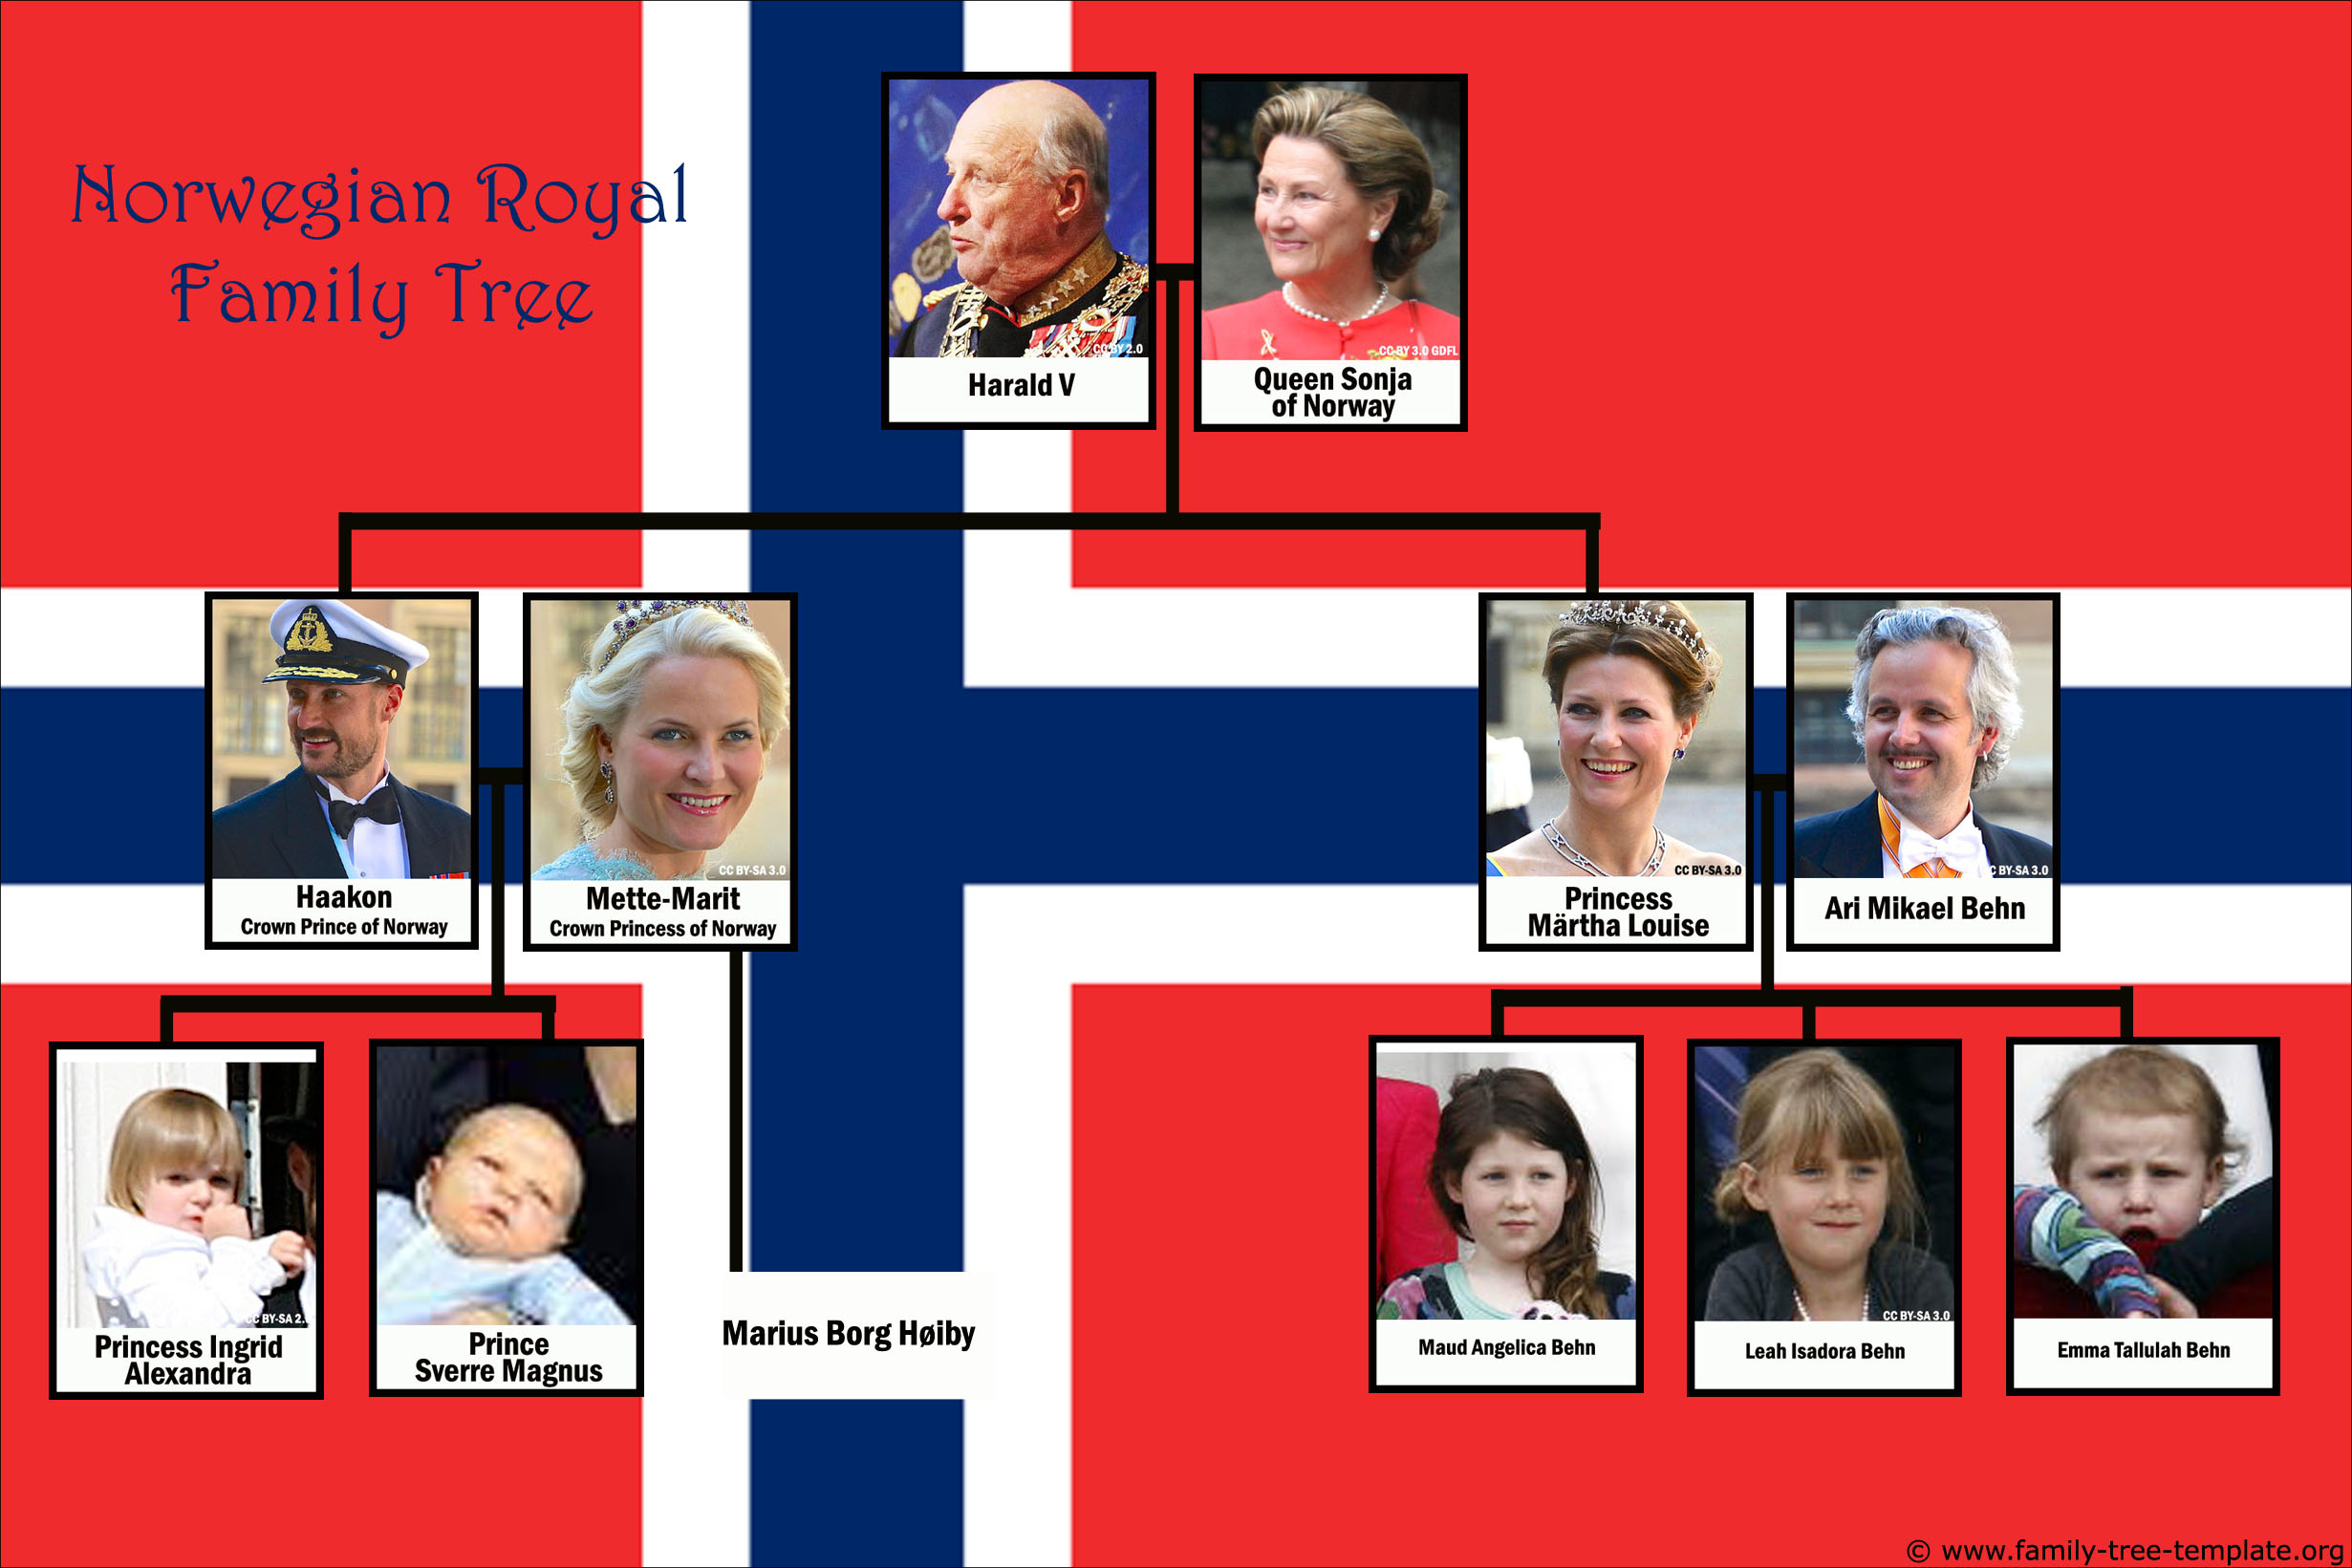 Norwegian royal genealogy tree of King Harald V.